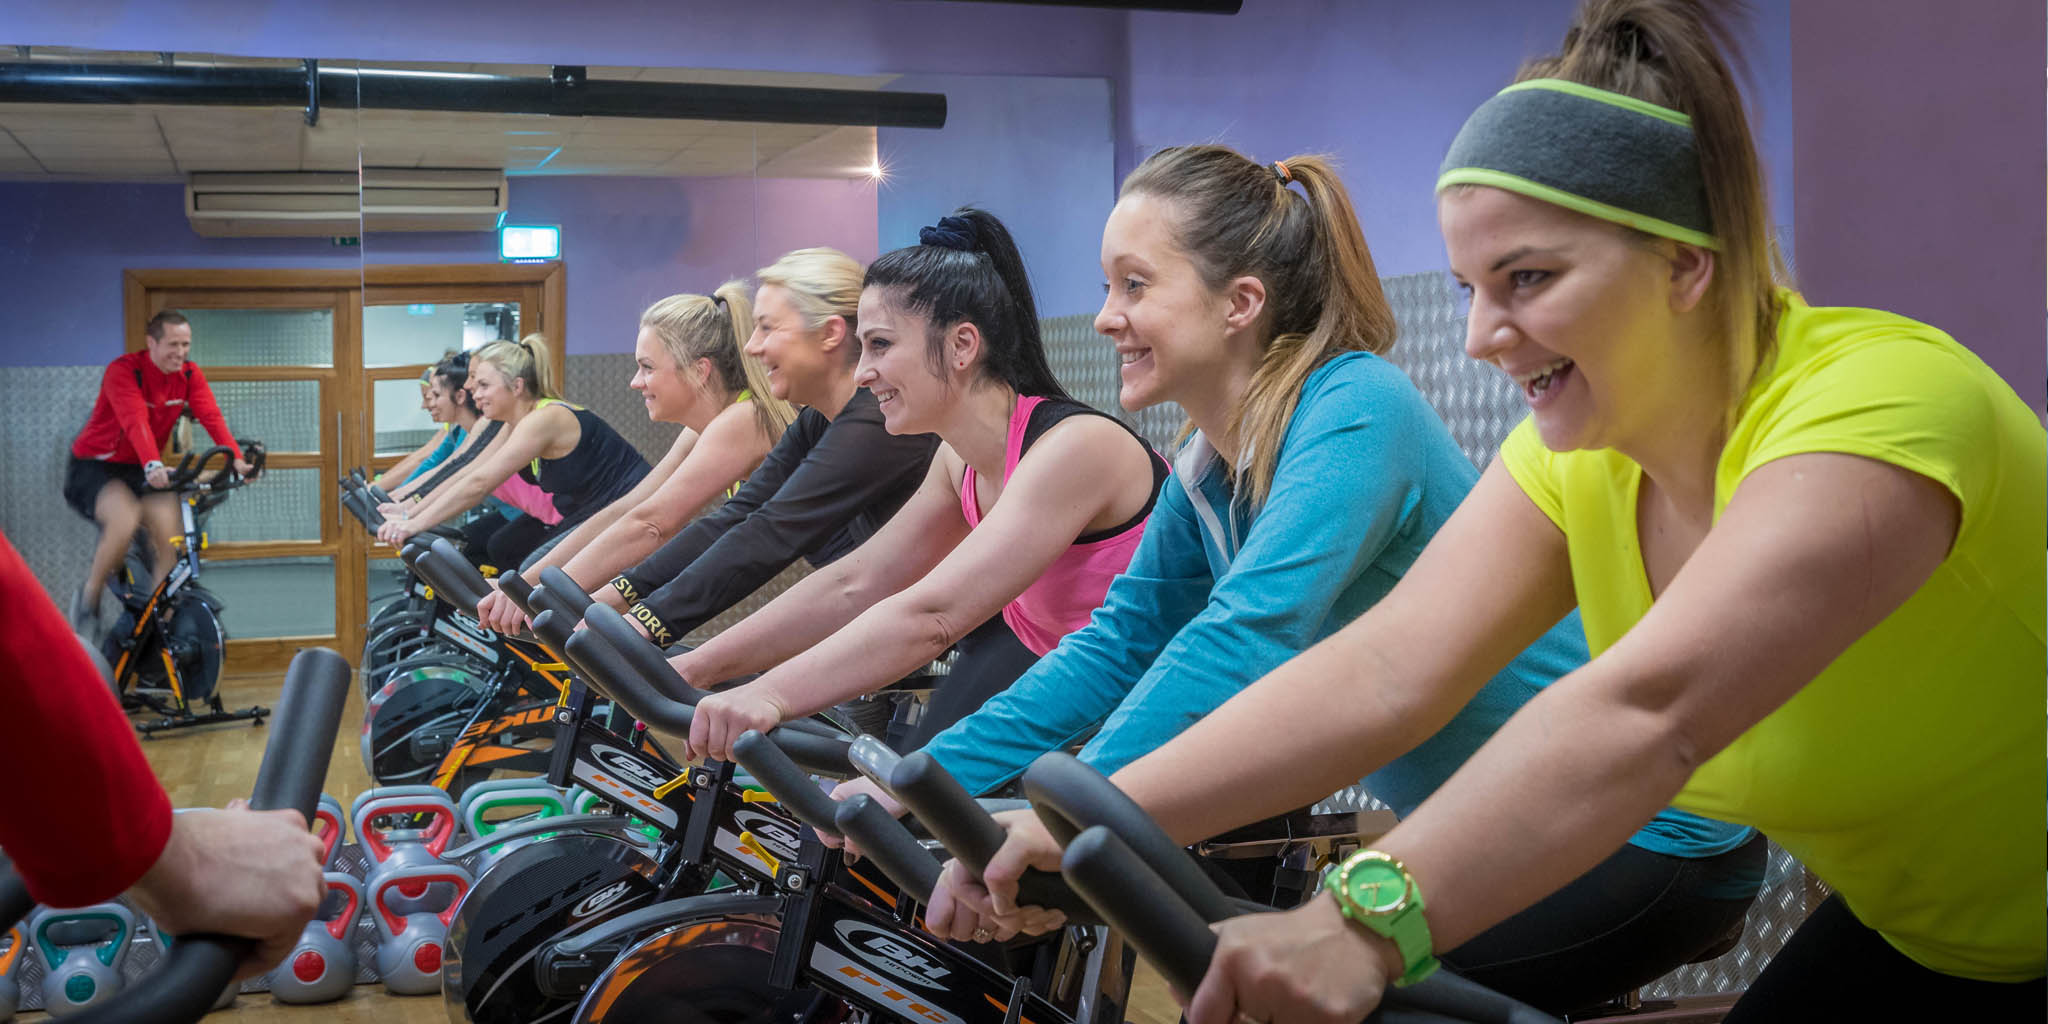 Ladies enjoying a spin class in the Maldron leisure centre in Limerick